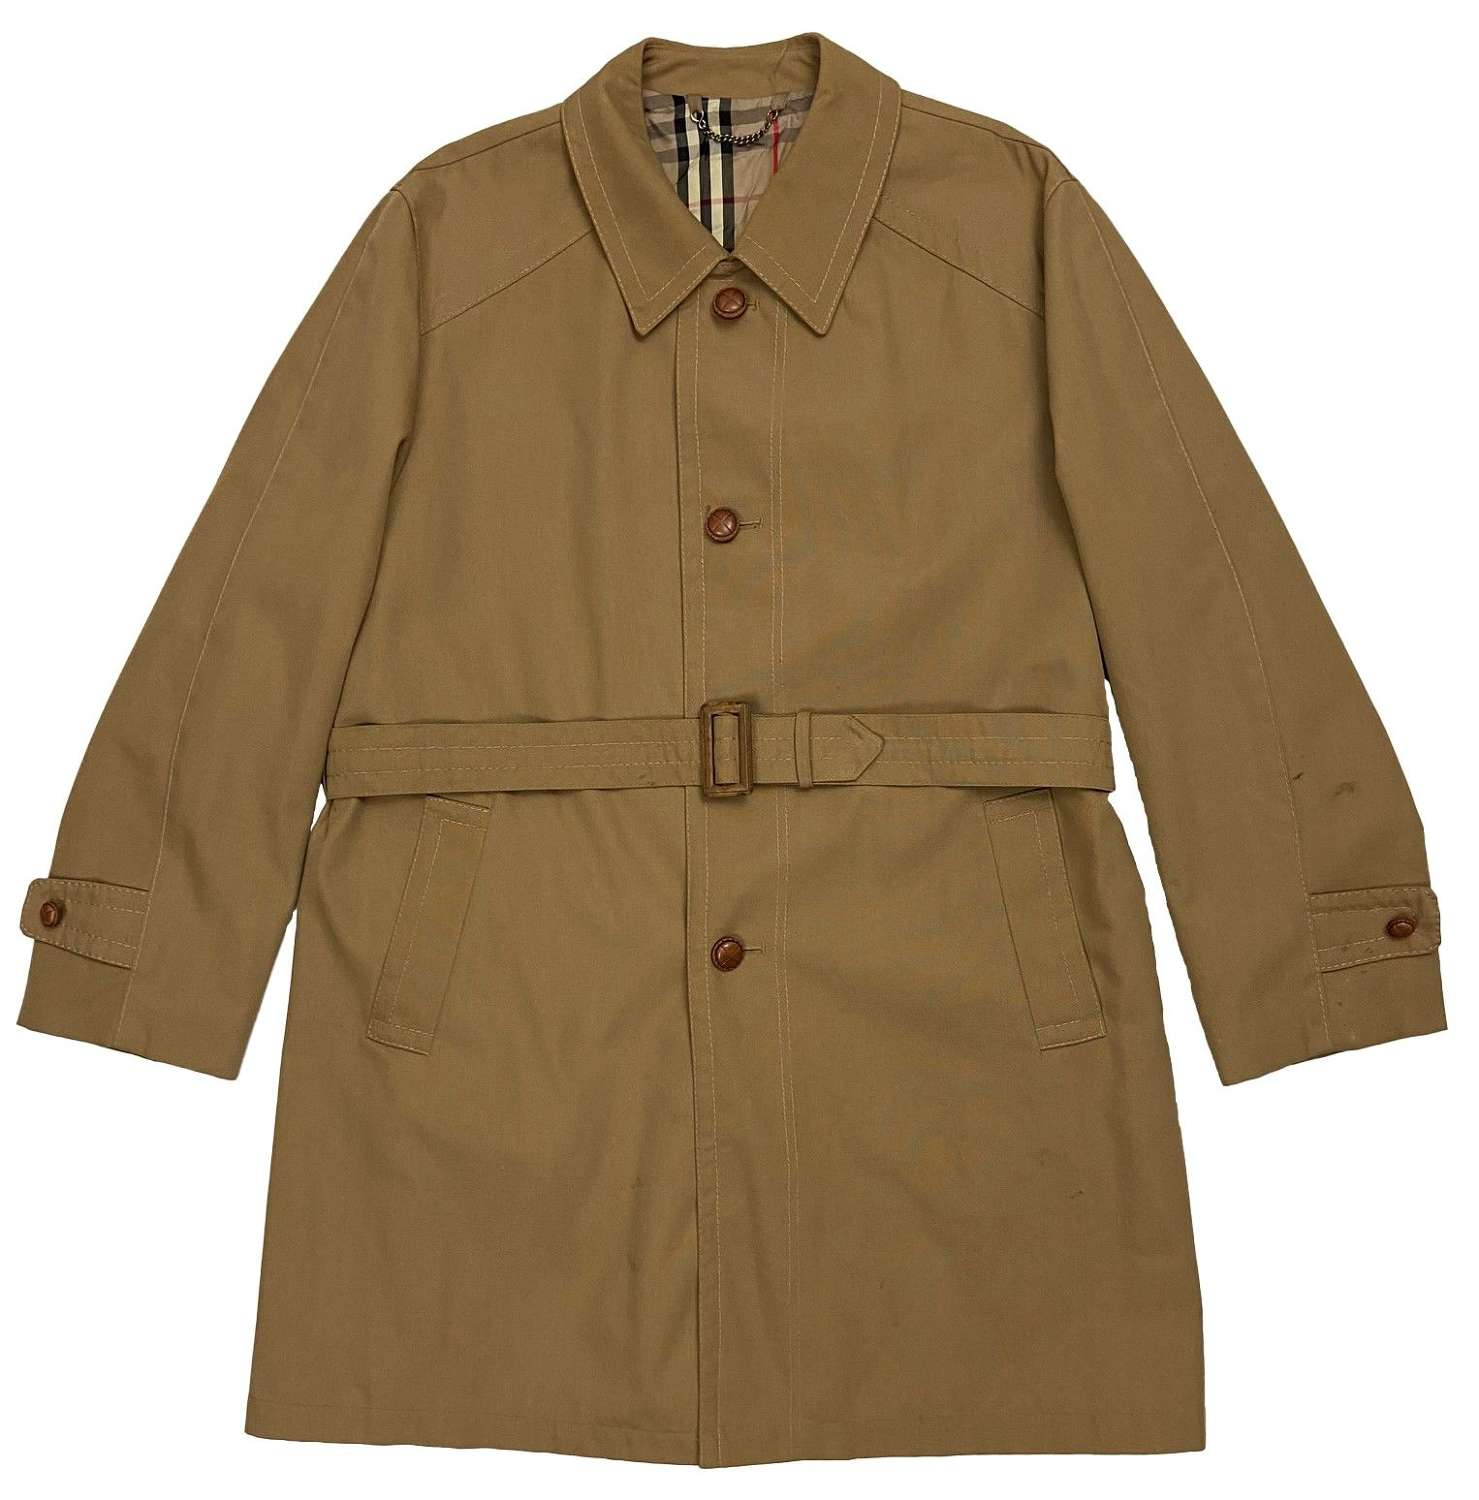 Original 1960s Men's Raincoat by 'Hepworths'